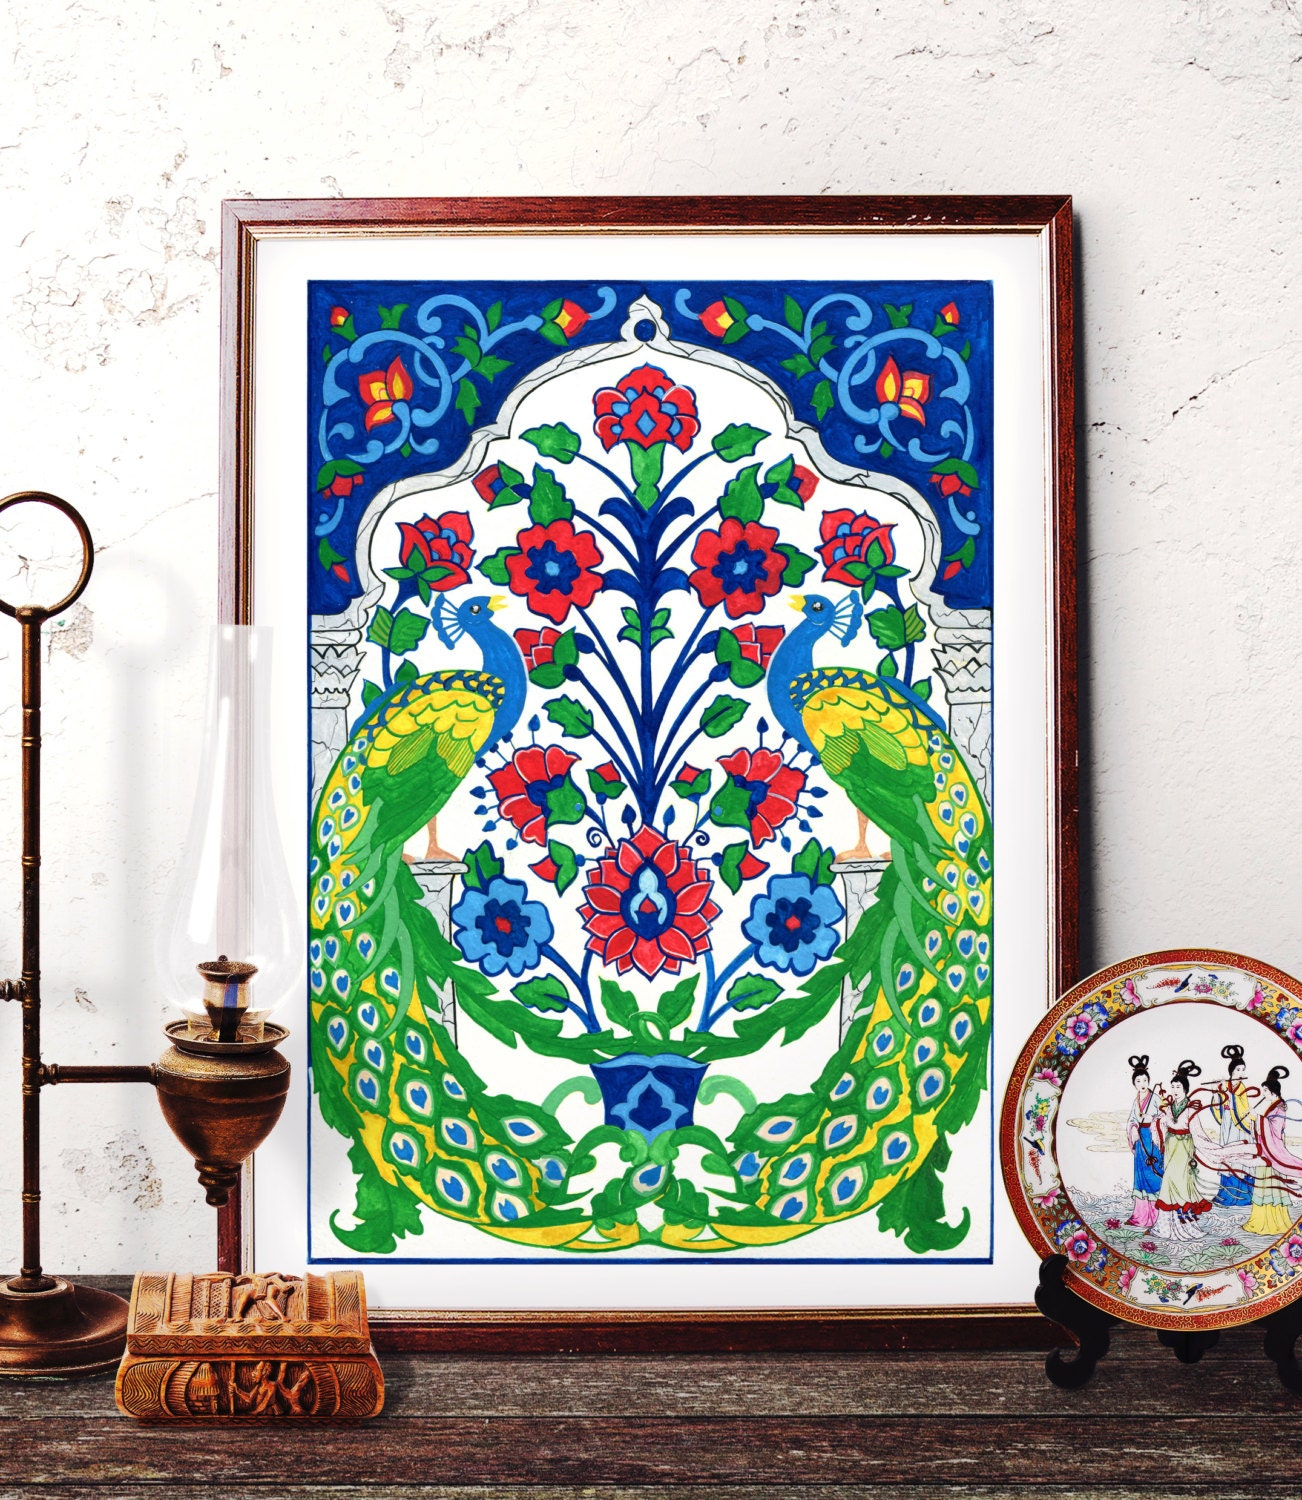 Turkish Home Decor: Peacock Watercolor Art Traditional Turkish Peacock Painting